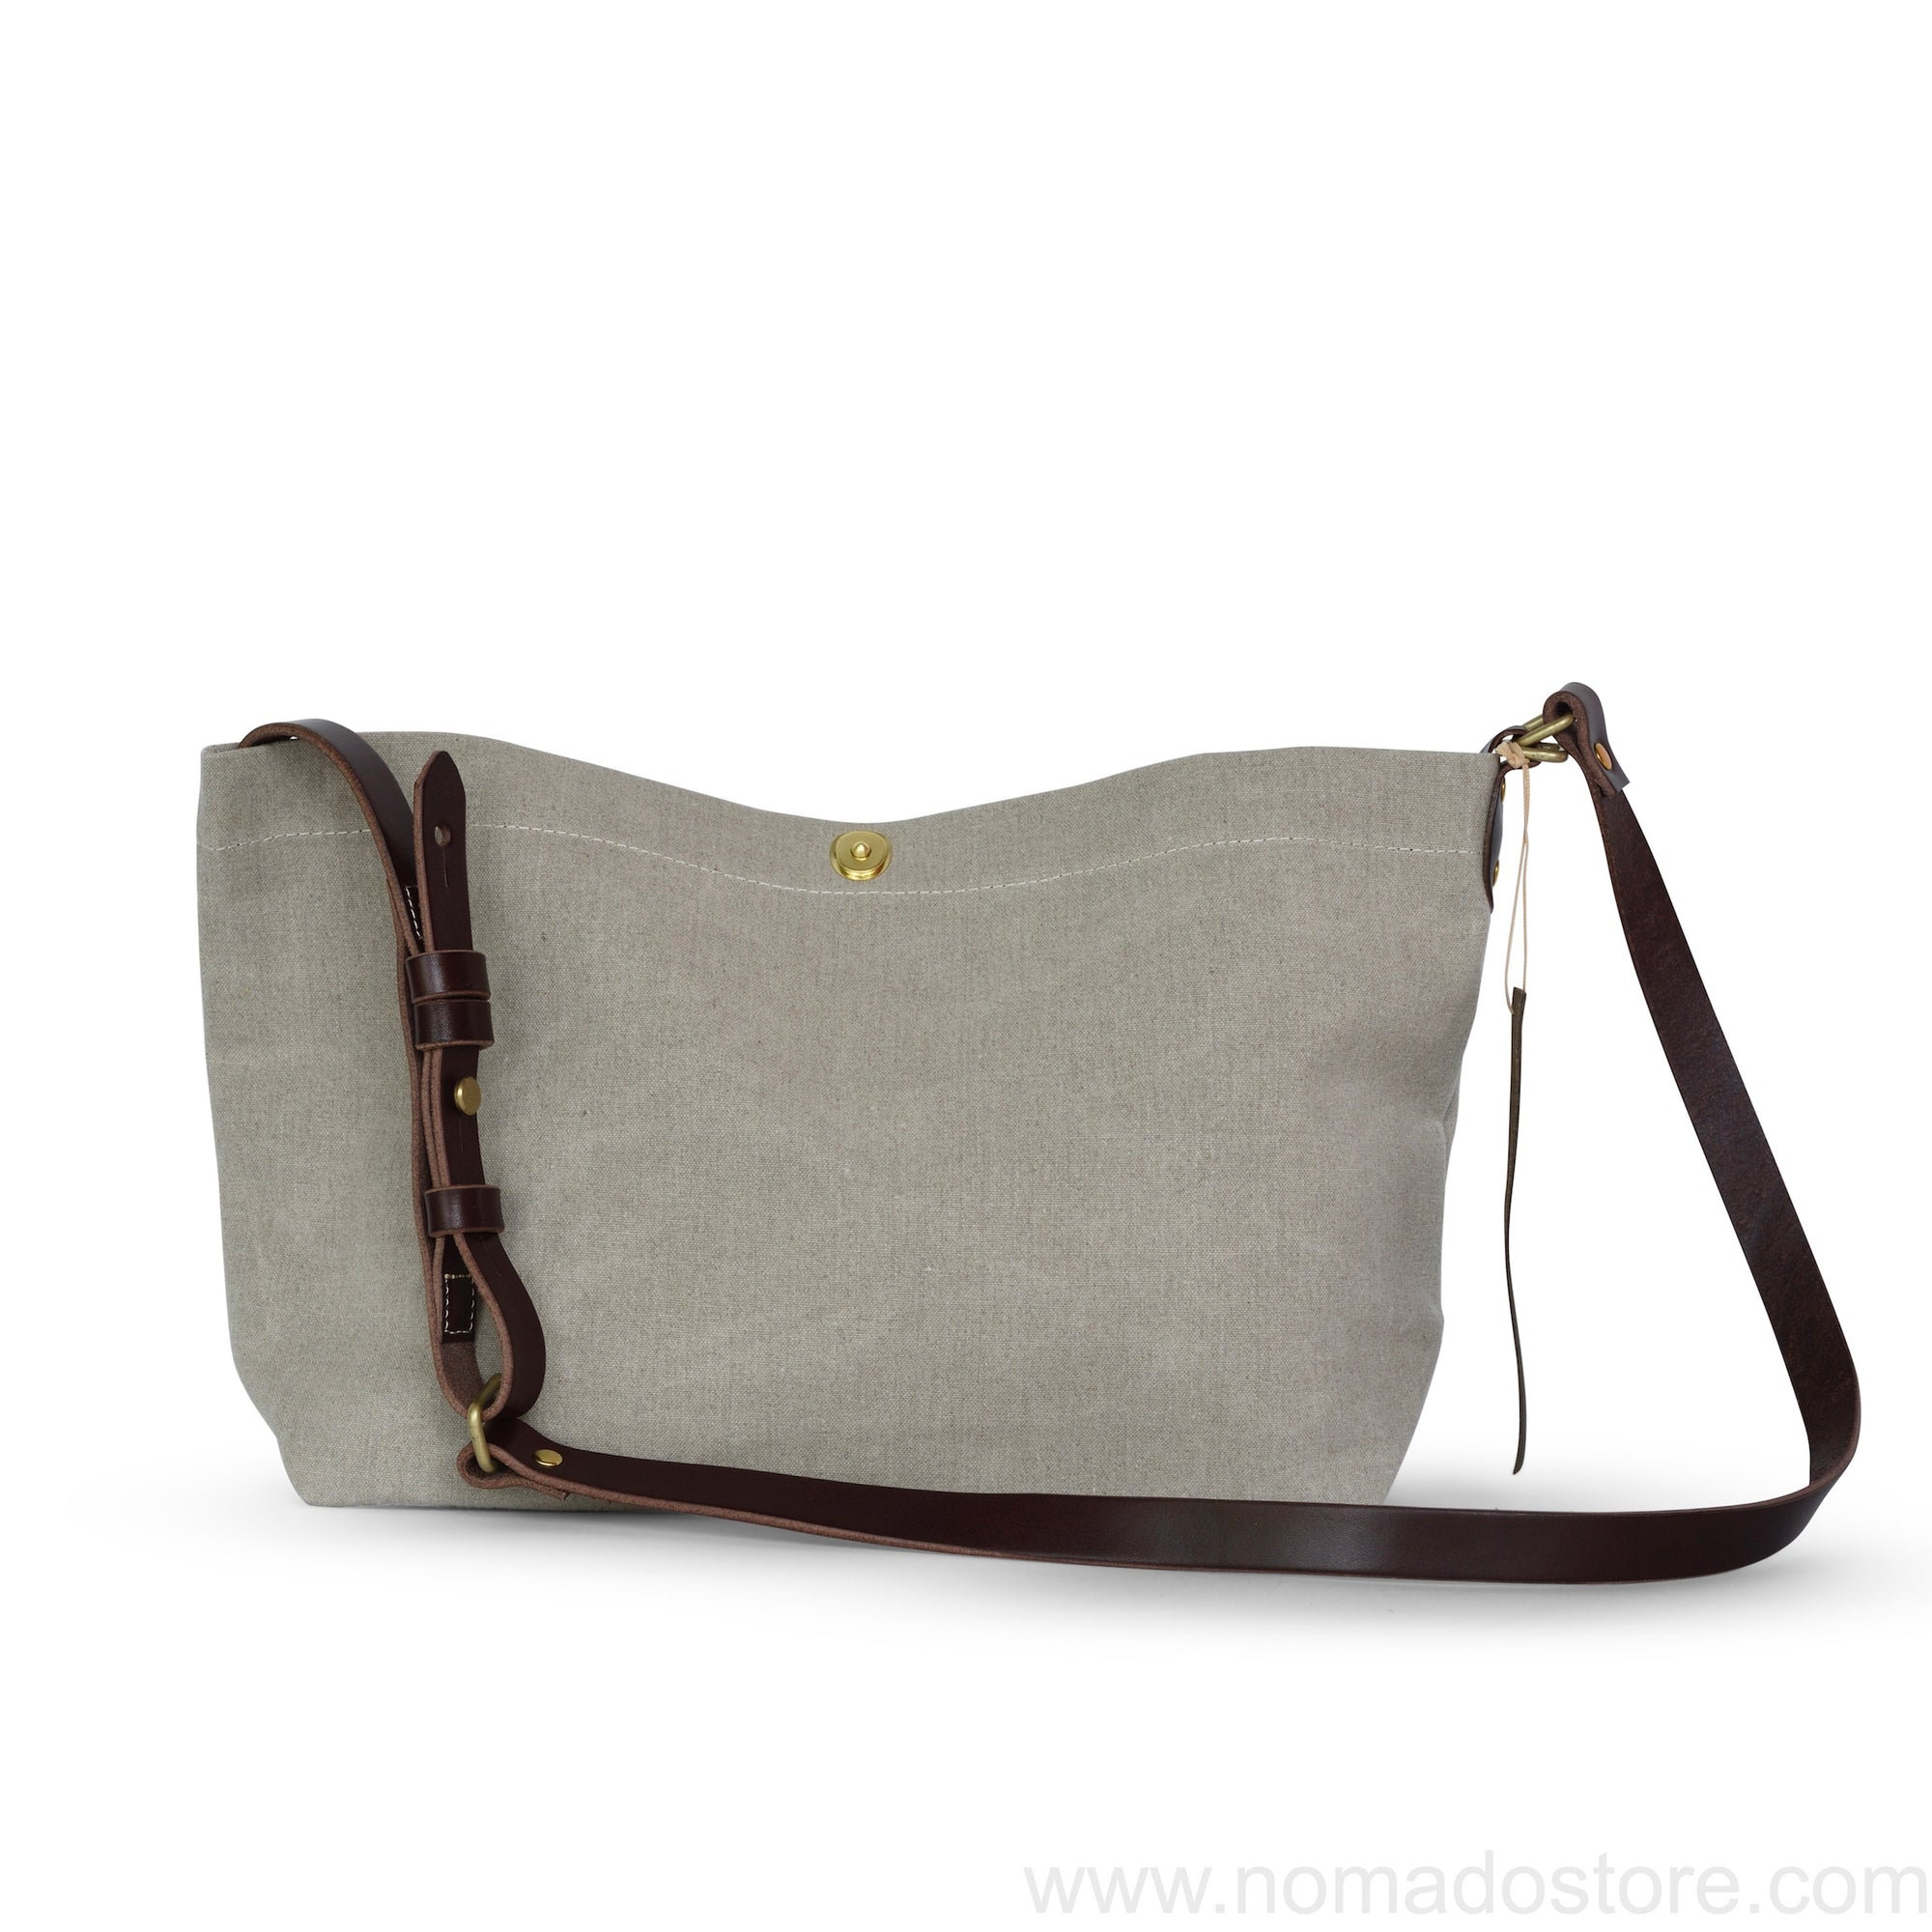 Marineday Airship Linen Canvas Shoulder Bag (Natural) - NOMADO Store